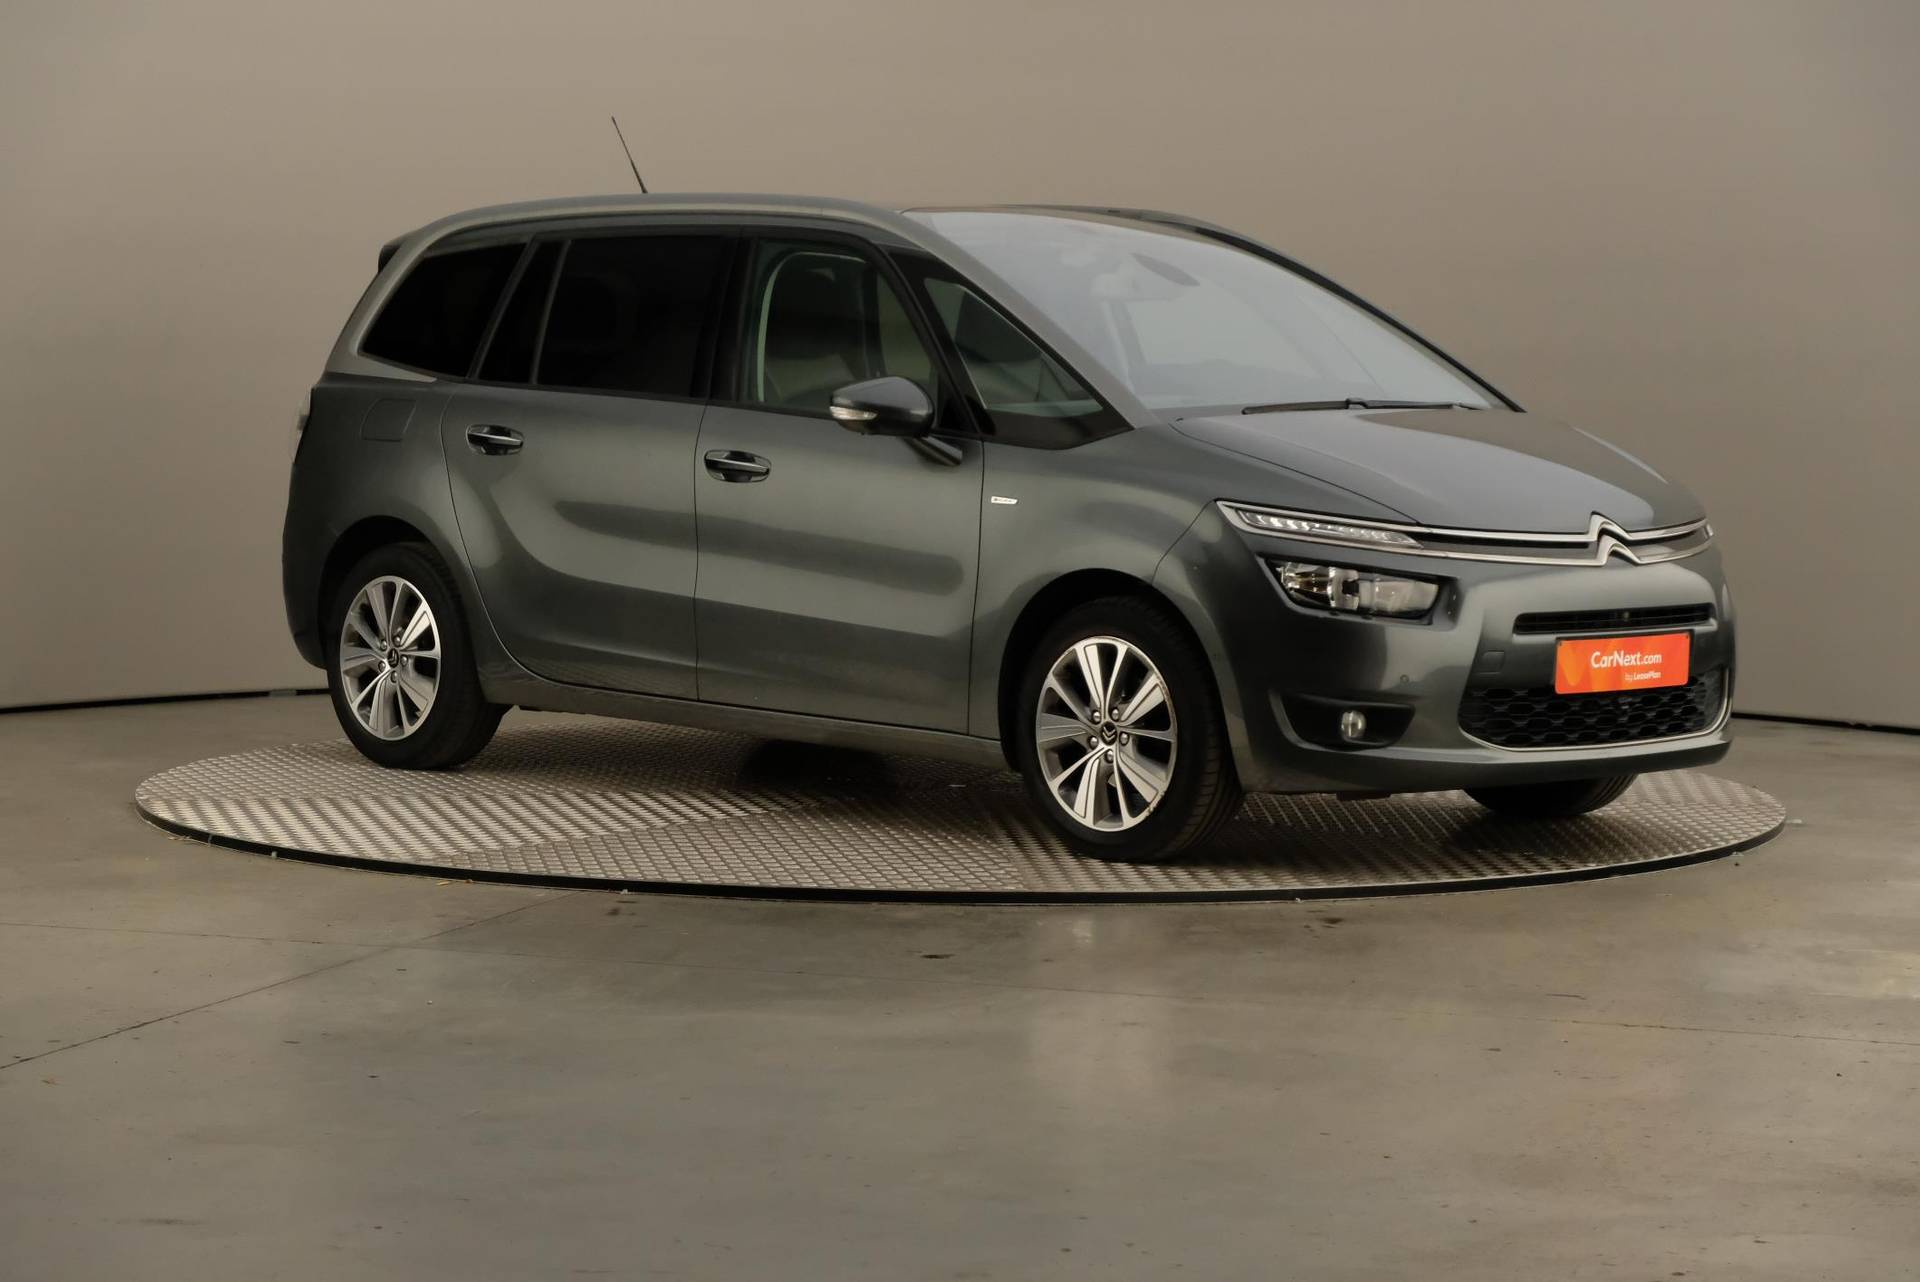 Citroën C4 Picasso e-HDi 115 ETG6, Attraction 7pl. PANO SOUND SYST. GPS CAMERA TREKHAAK..., 360-image27